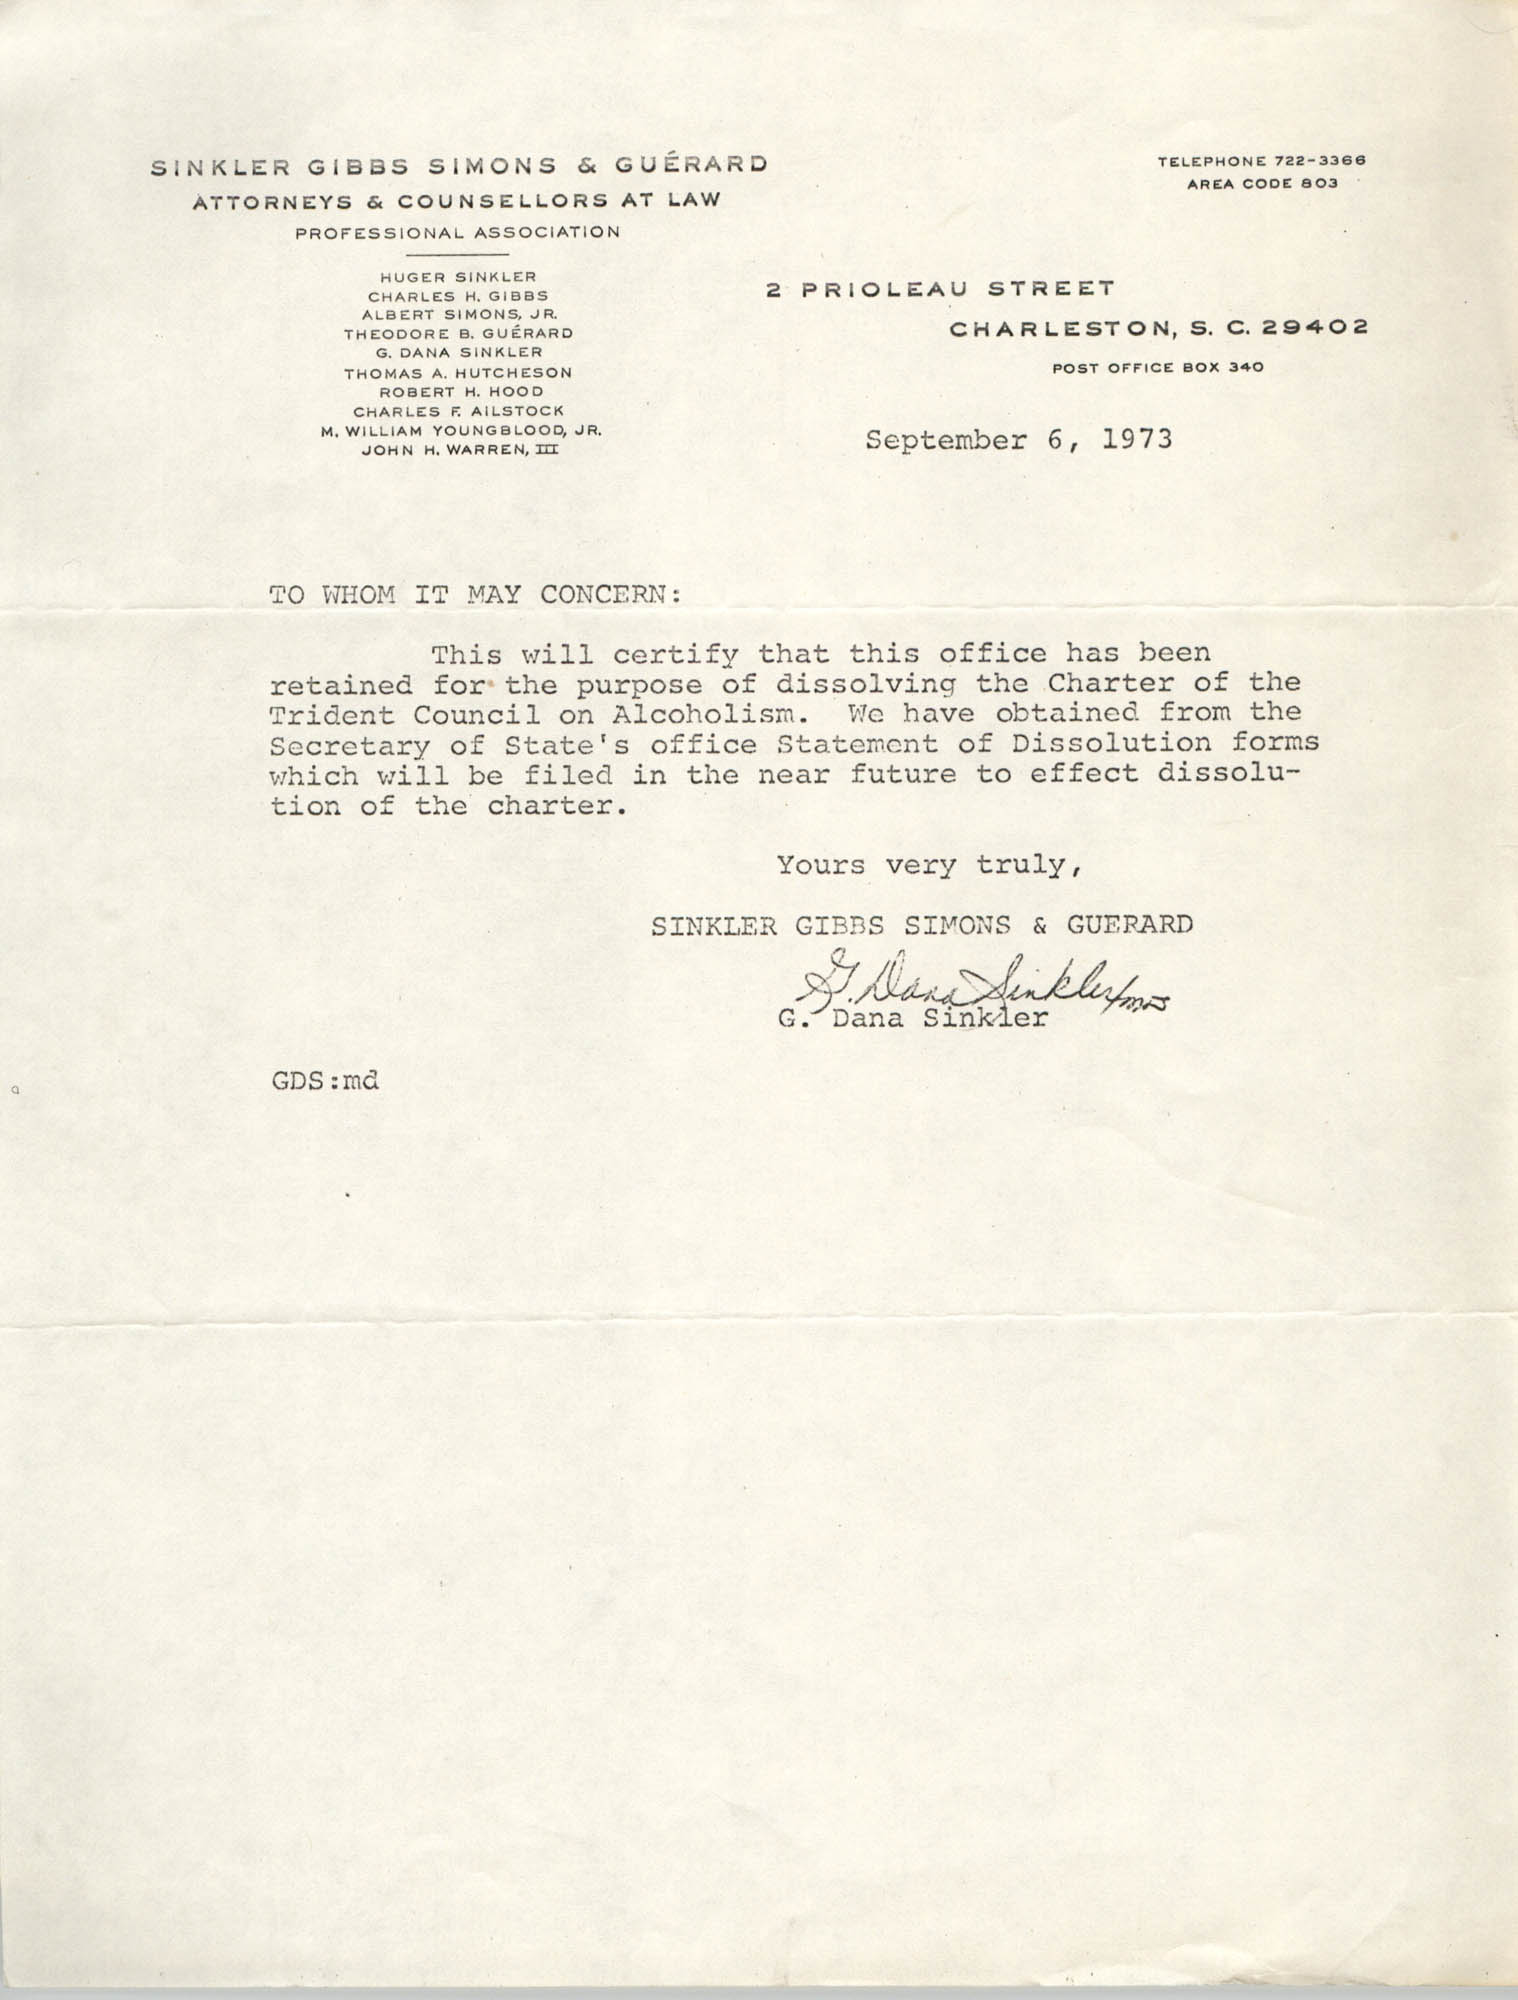 Letter from G. Dana Sinkler, September 6, 1973